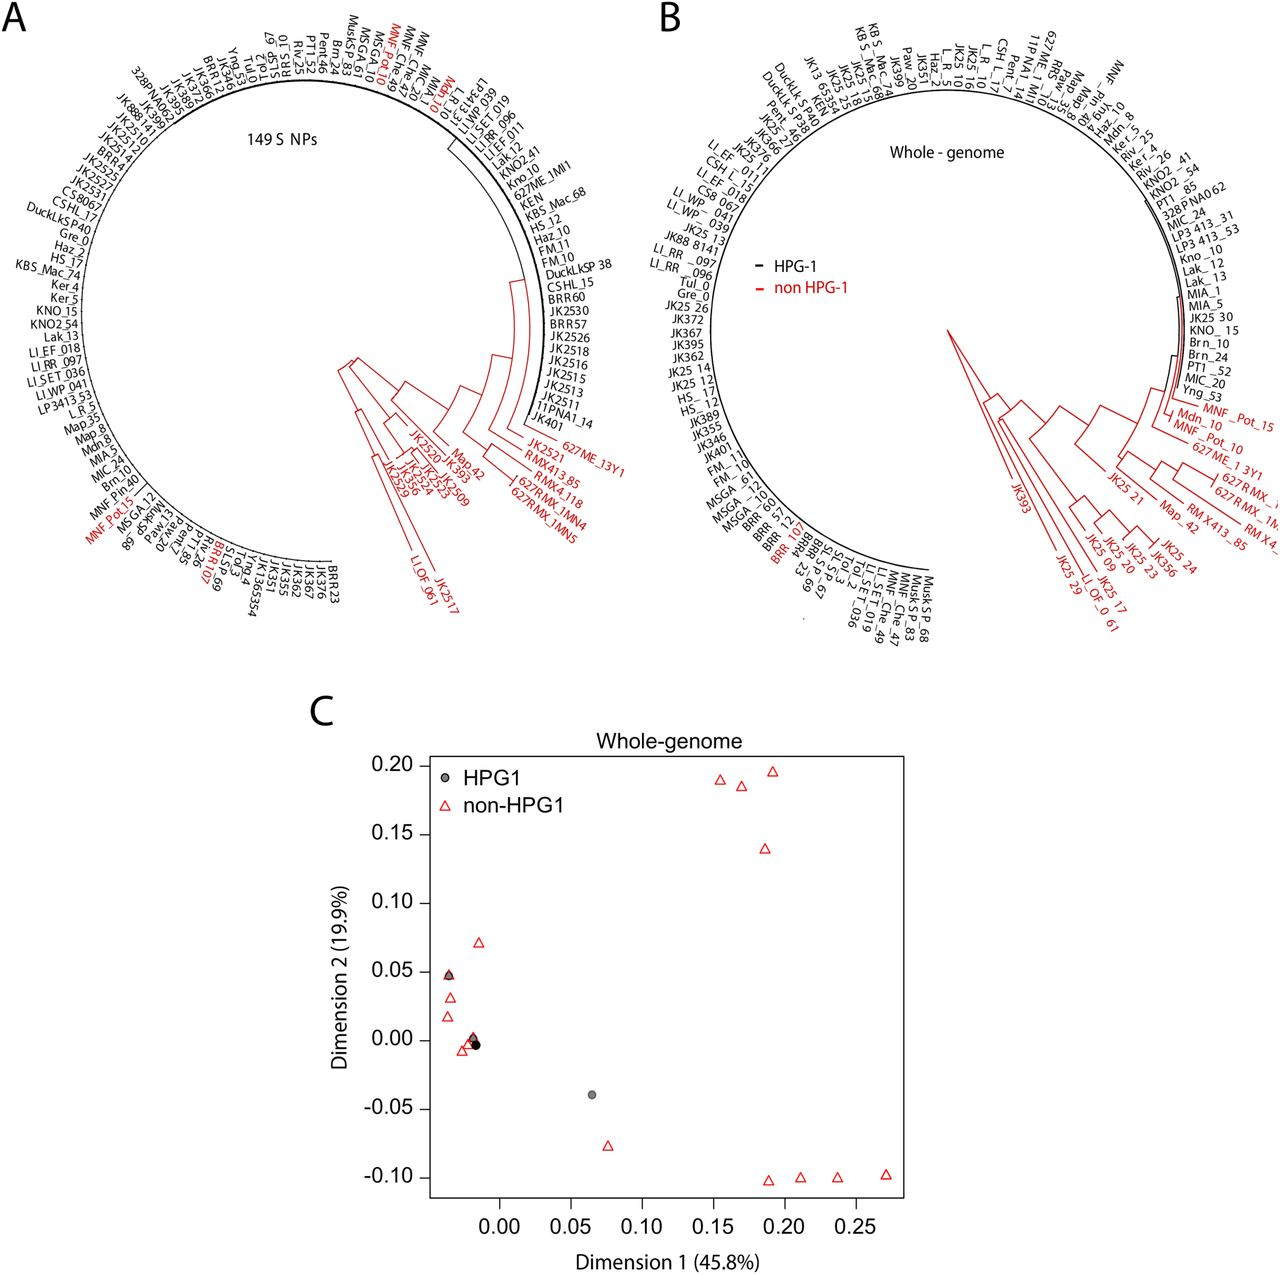 The rate and effect of de novo mutations in natural